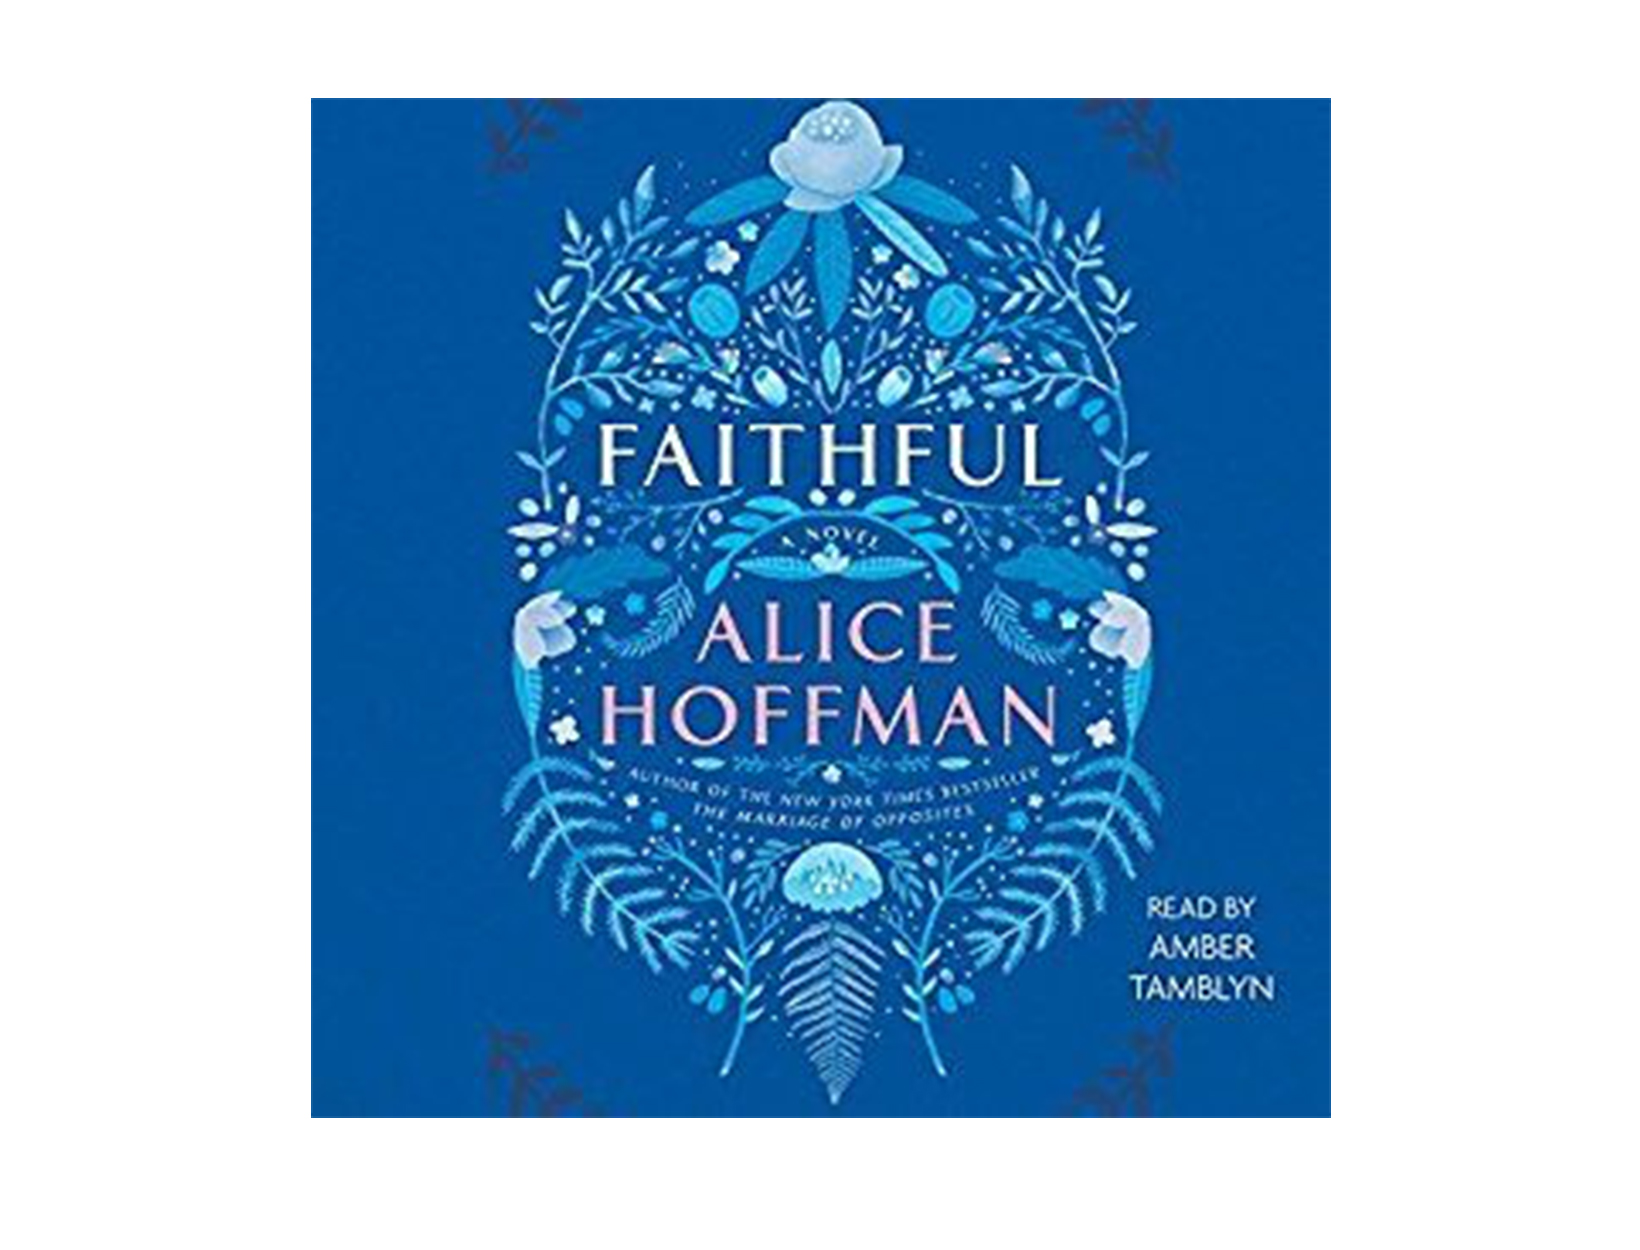 Faithful by Alice Hoffman, read by Amber Tamblyn